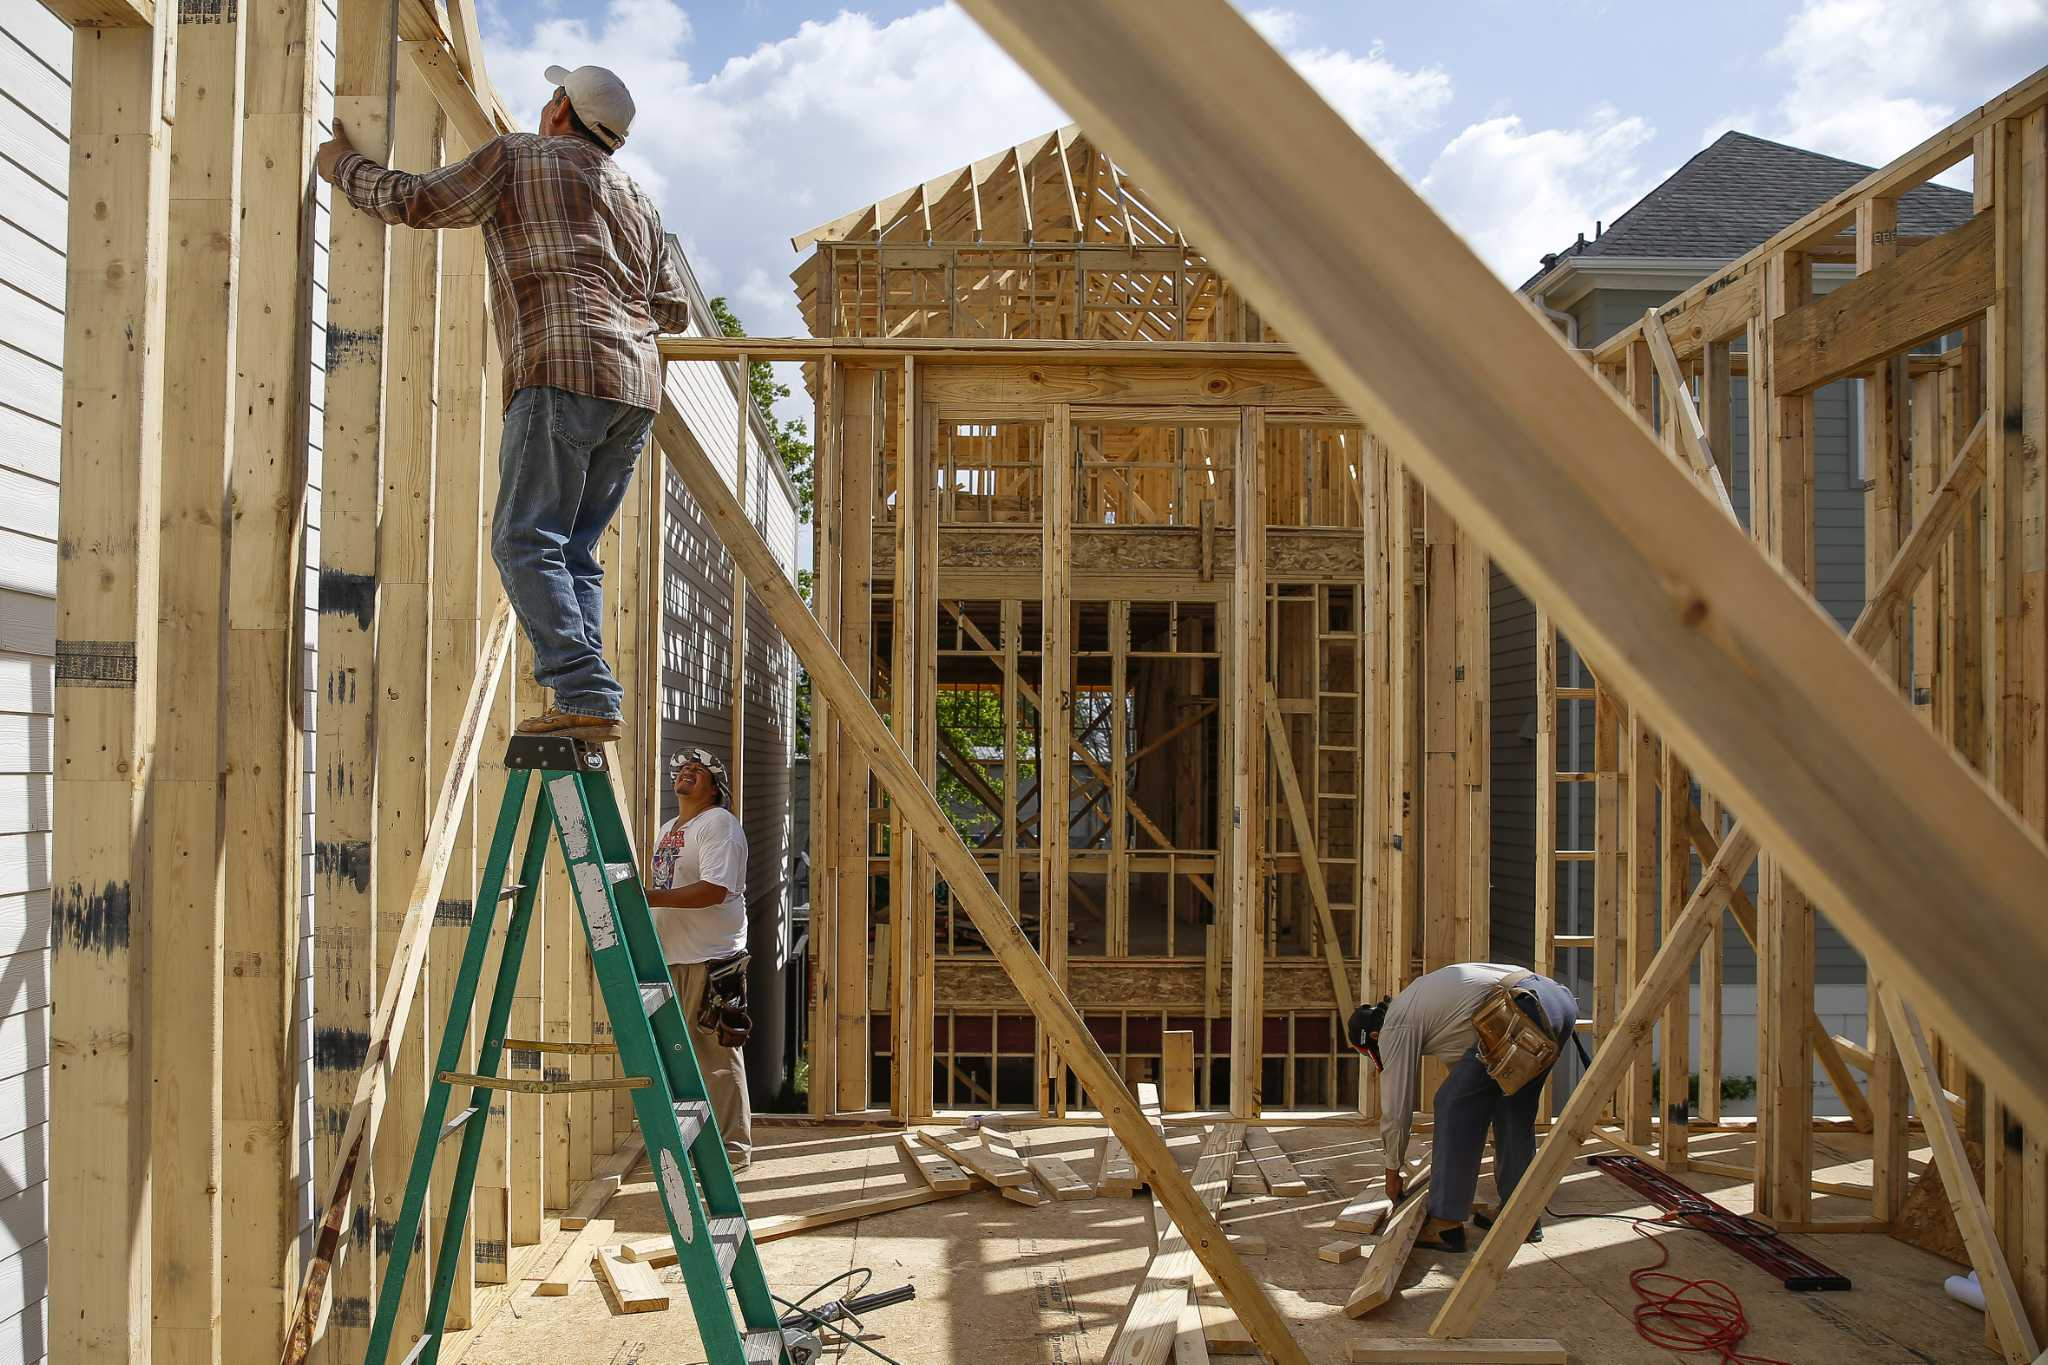 Texas builders fear fallout of immigration crackdown on for How much to build a house in texas